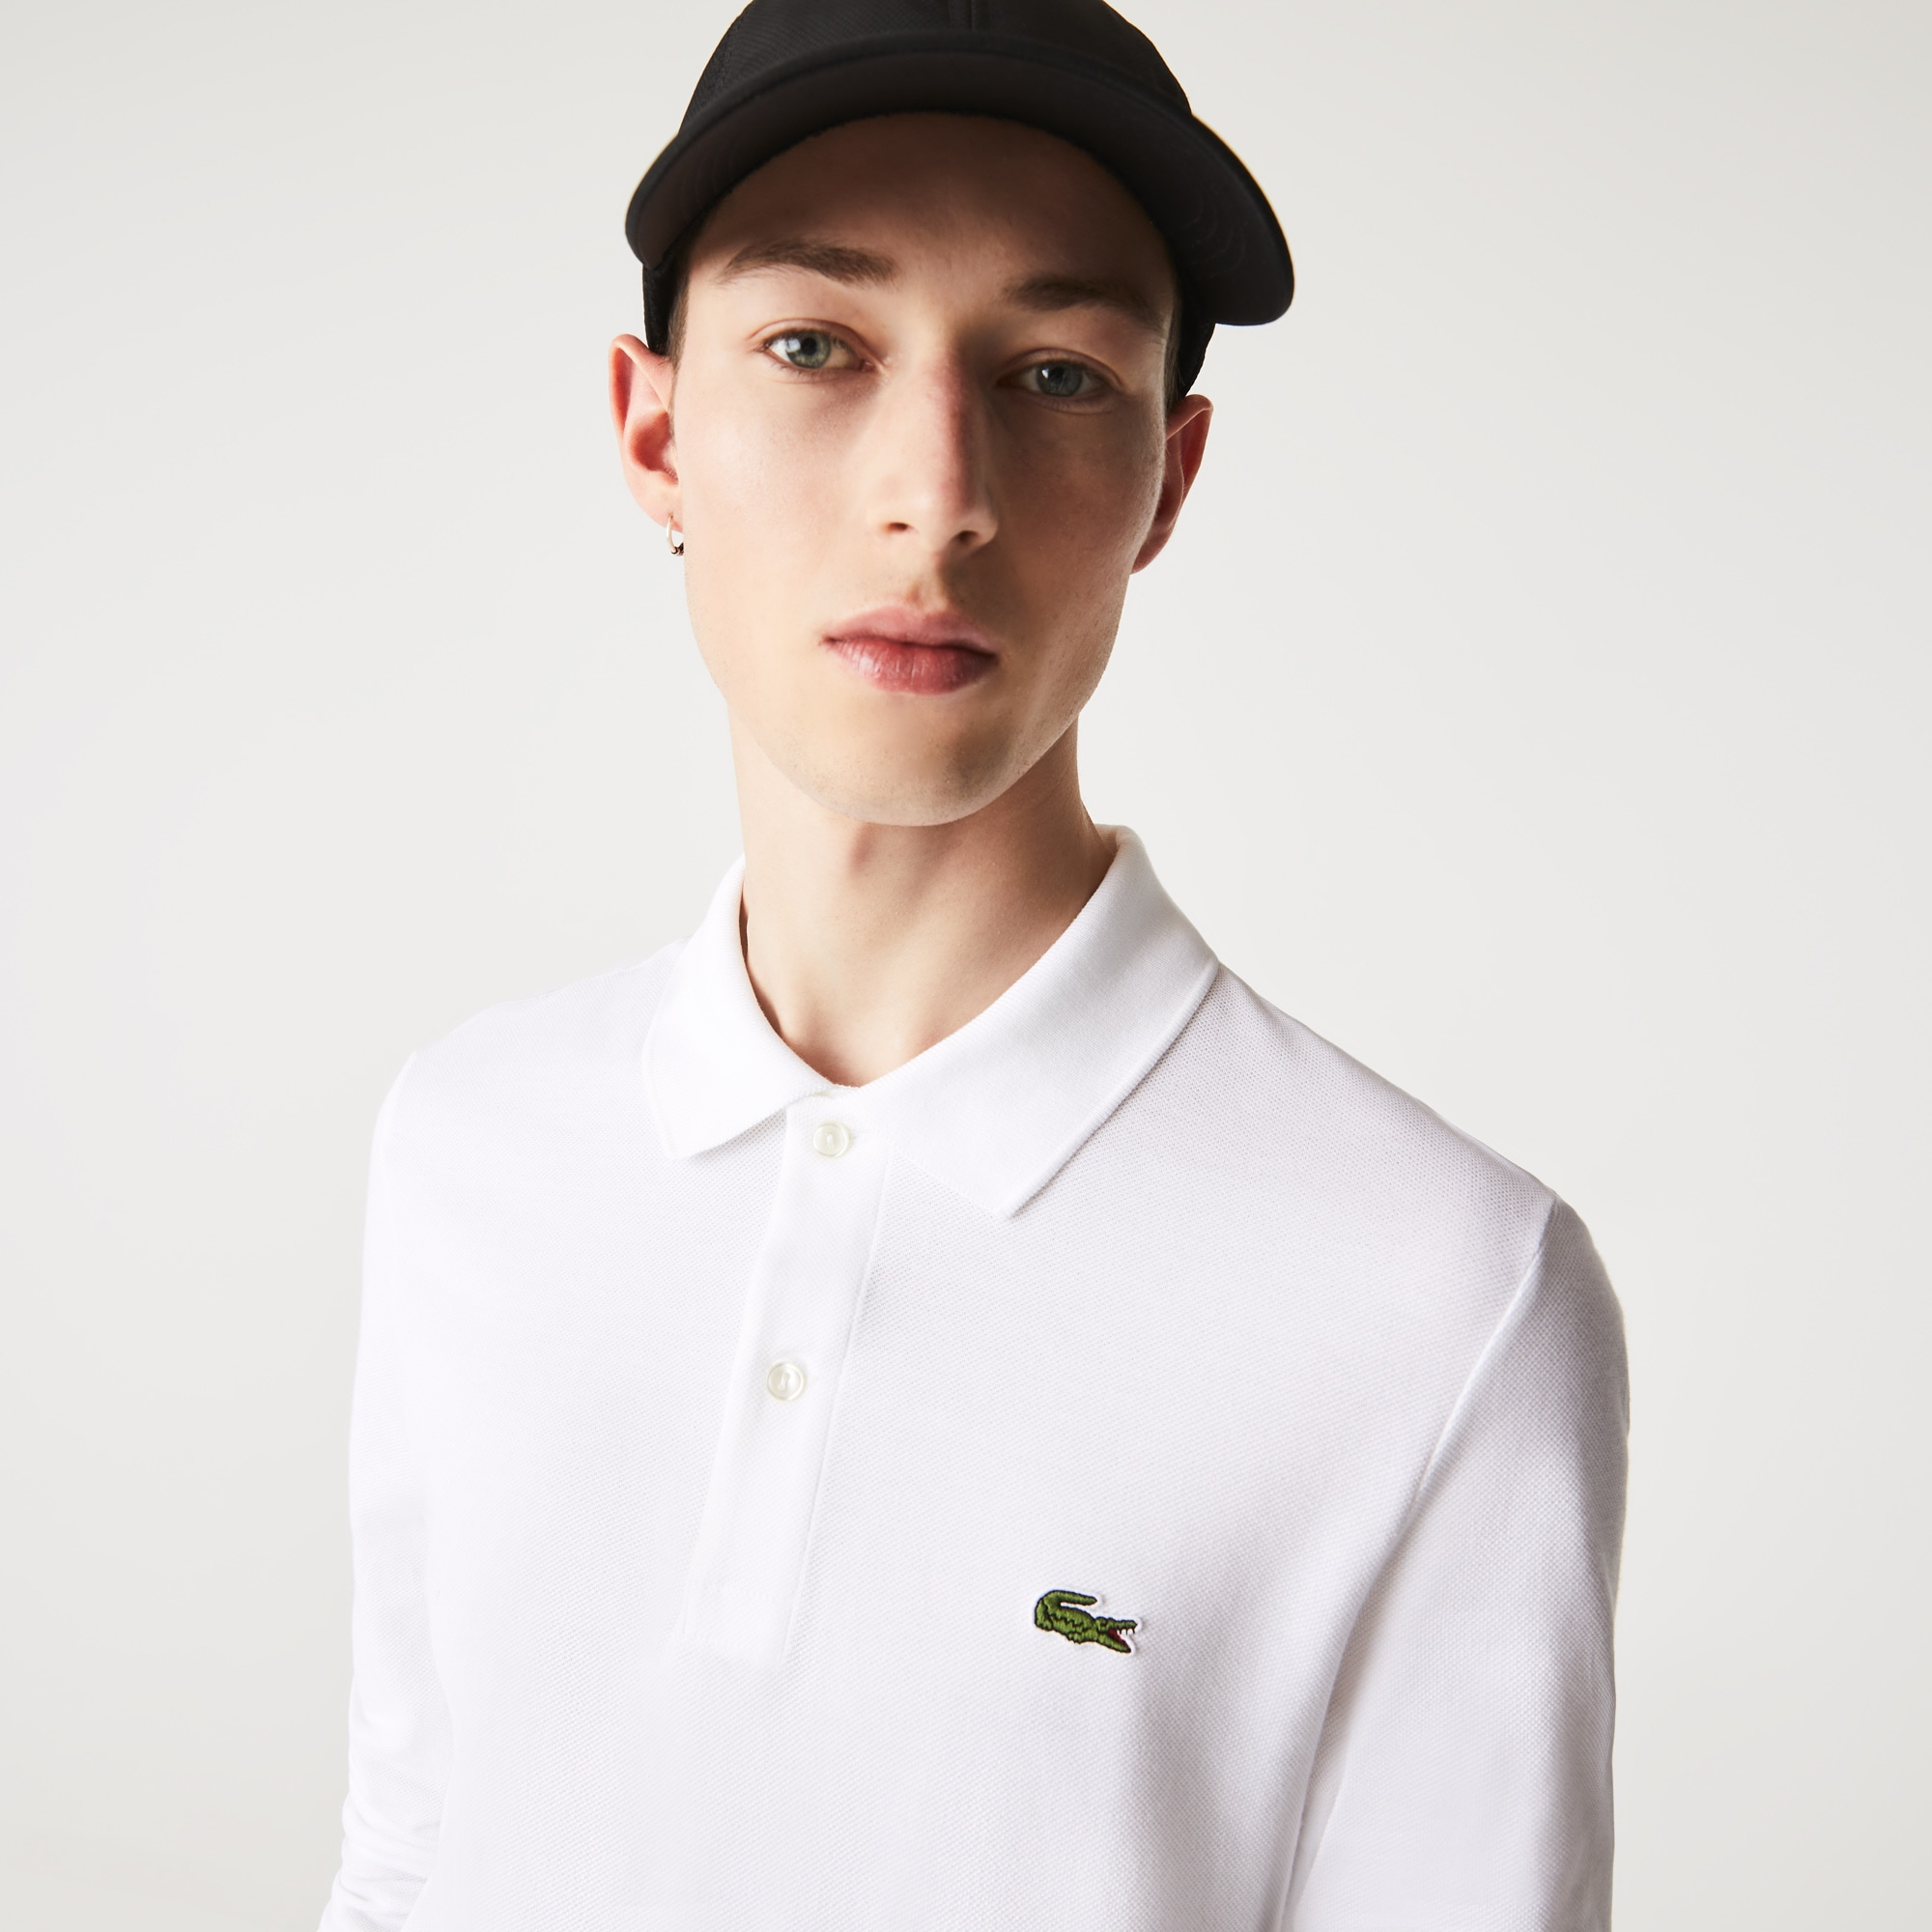 Polo Slim Fit Lacoste de manga comprida em petit piqué unicolor